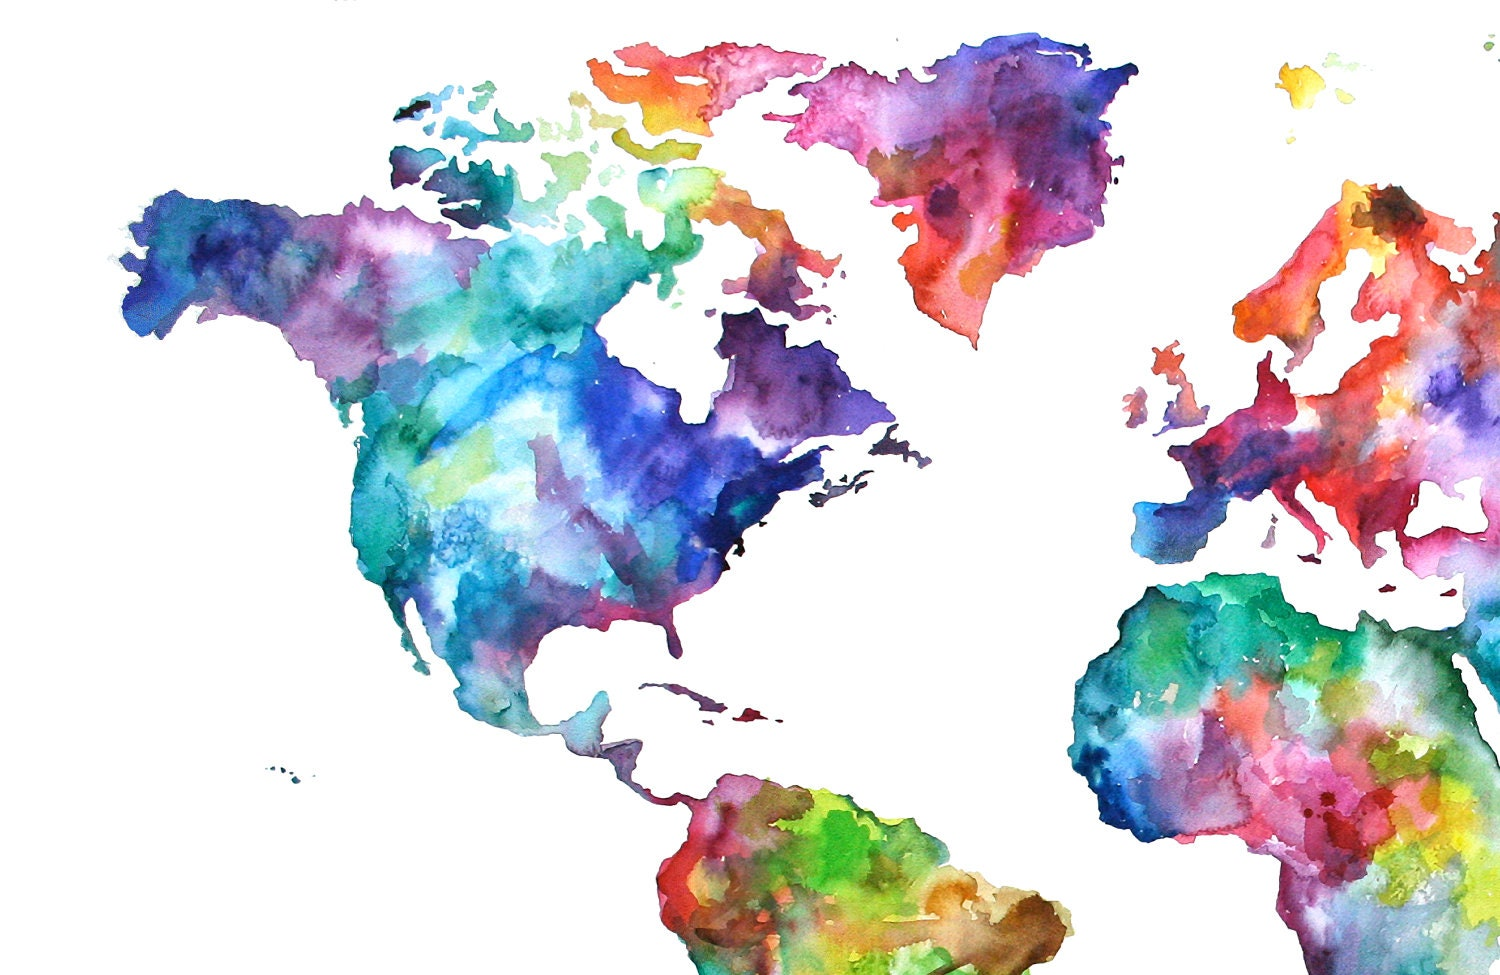 Watercolor world map 3 ink pinterest watercolor tattoo and watercolor world map 3 ink pinterest watercolor tattoo and map tattoos gumiabroncs Images